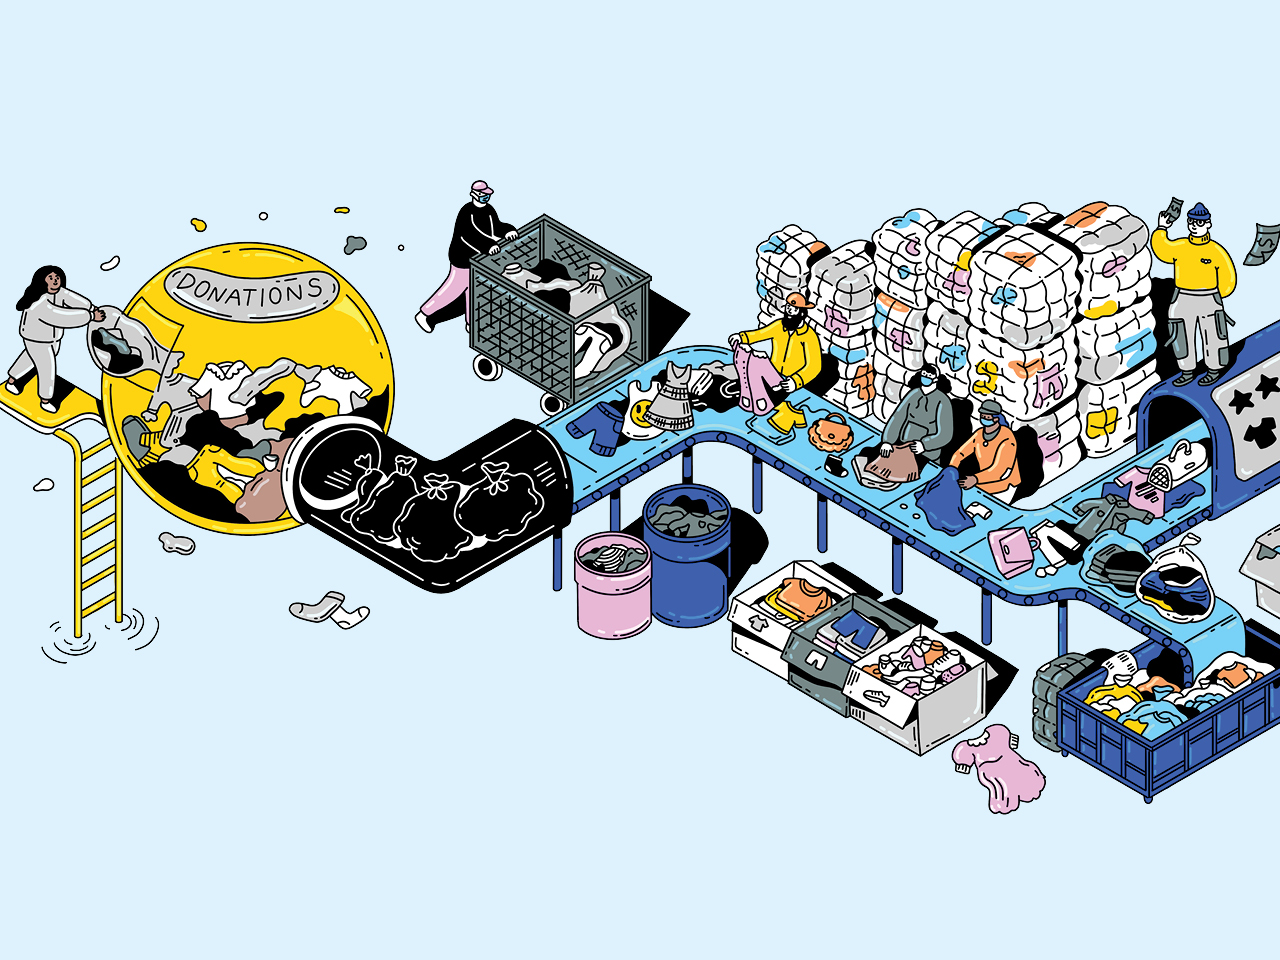 An illustration of second-hand clothing on a conveyor belt.